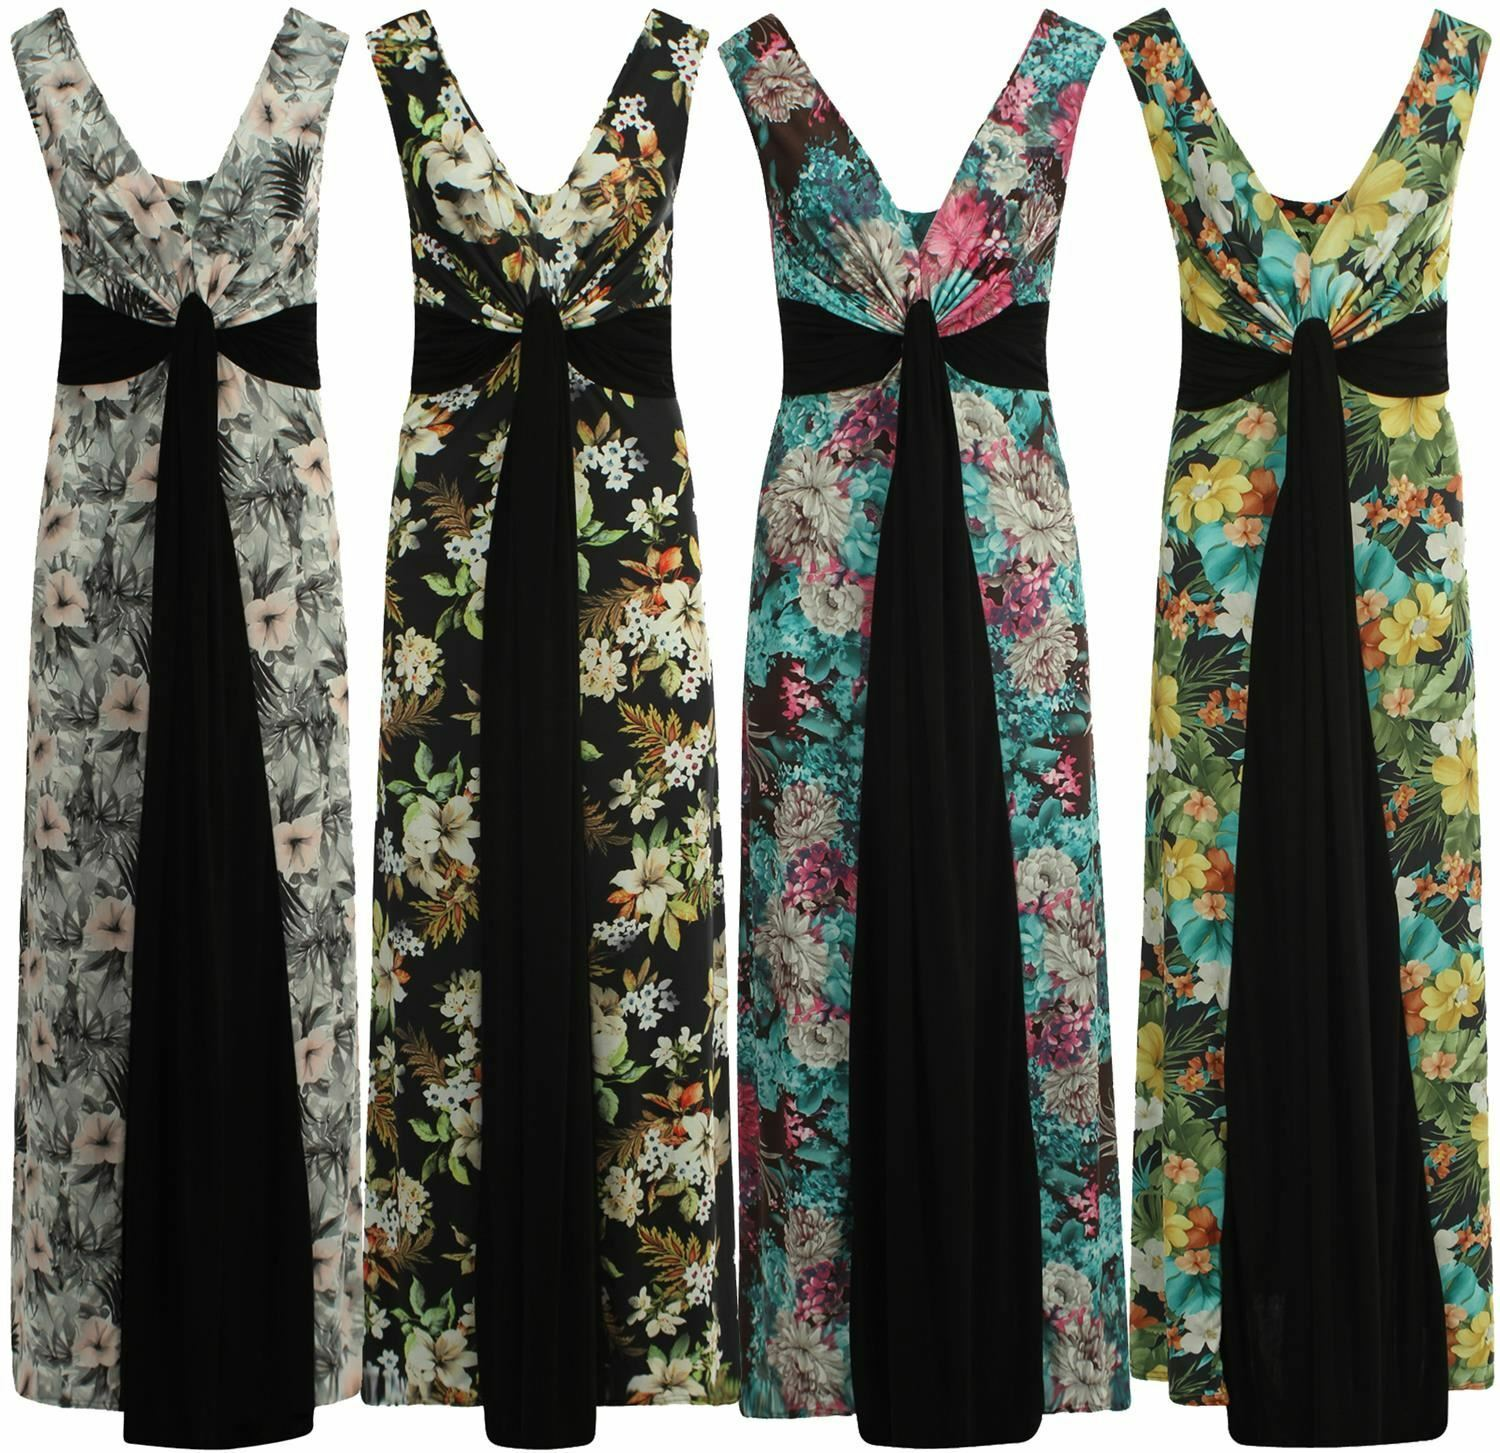 New Ladies Plus Size Grecian Boob Knot Floral Print Long Maxi Dress 8-26